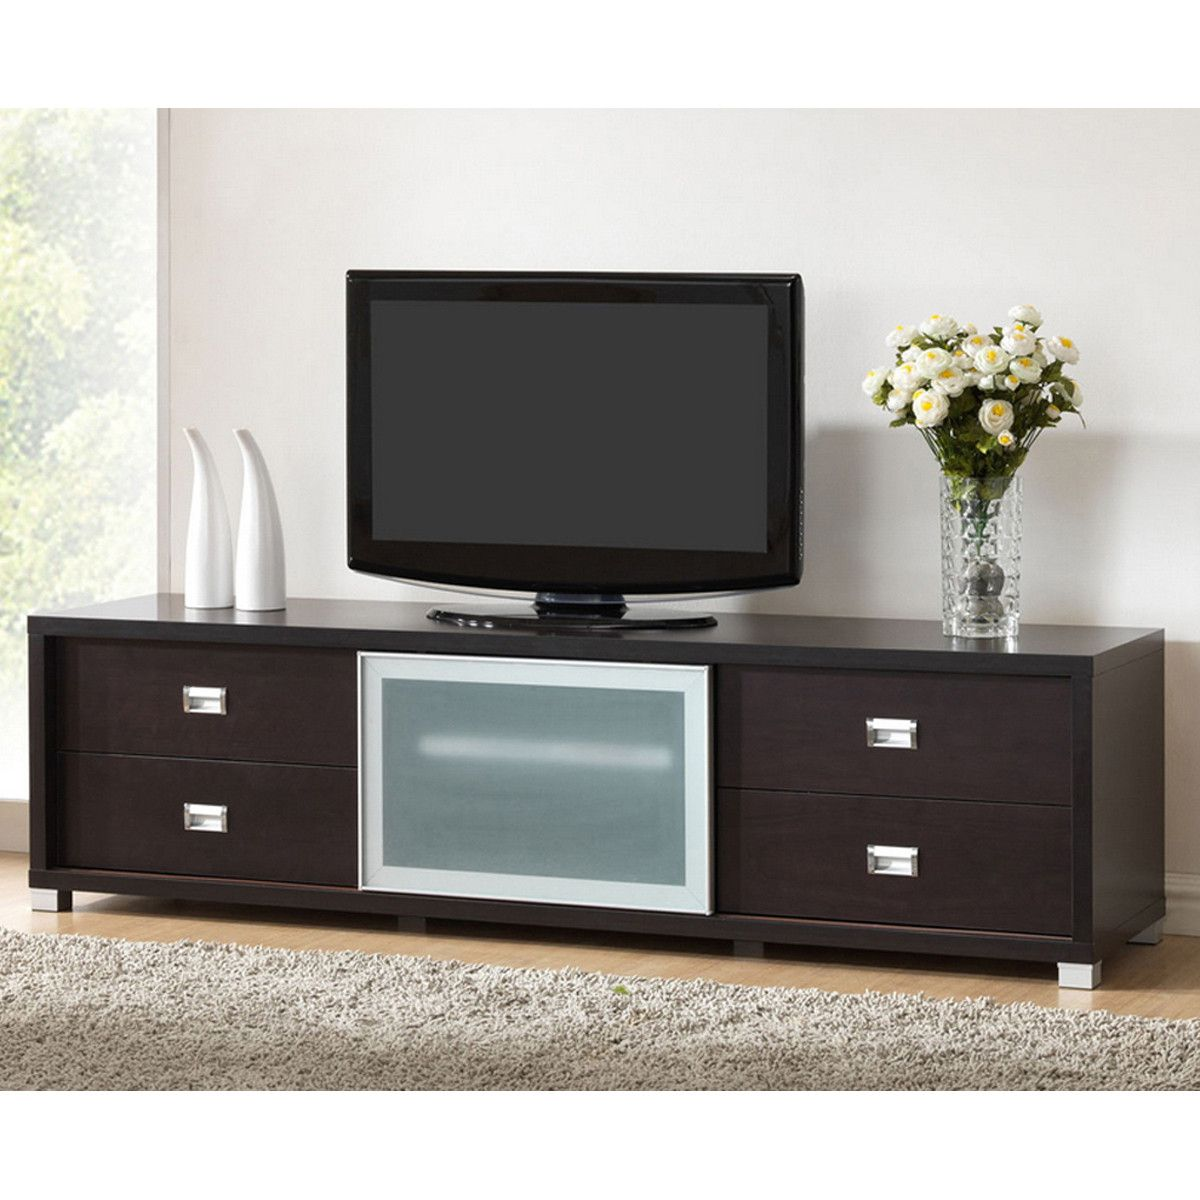 Botticelli Brown Modern Tv Stand With Frosted Glass Door Future